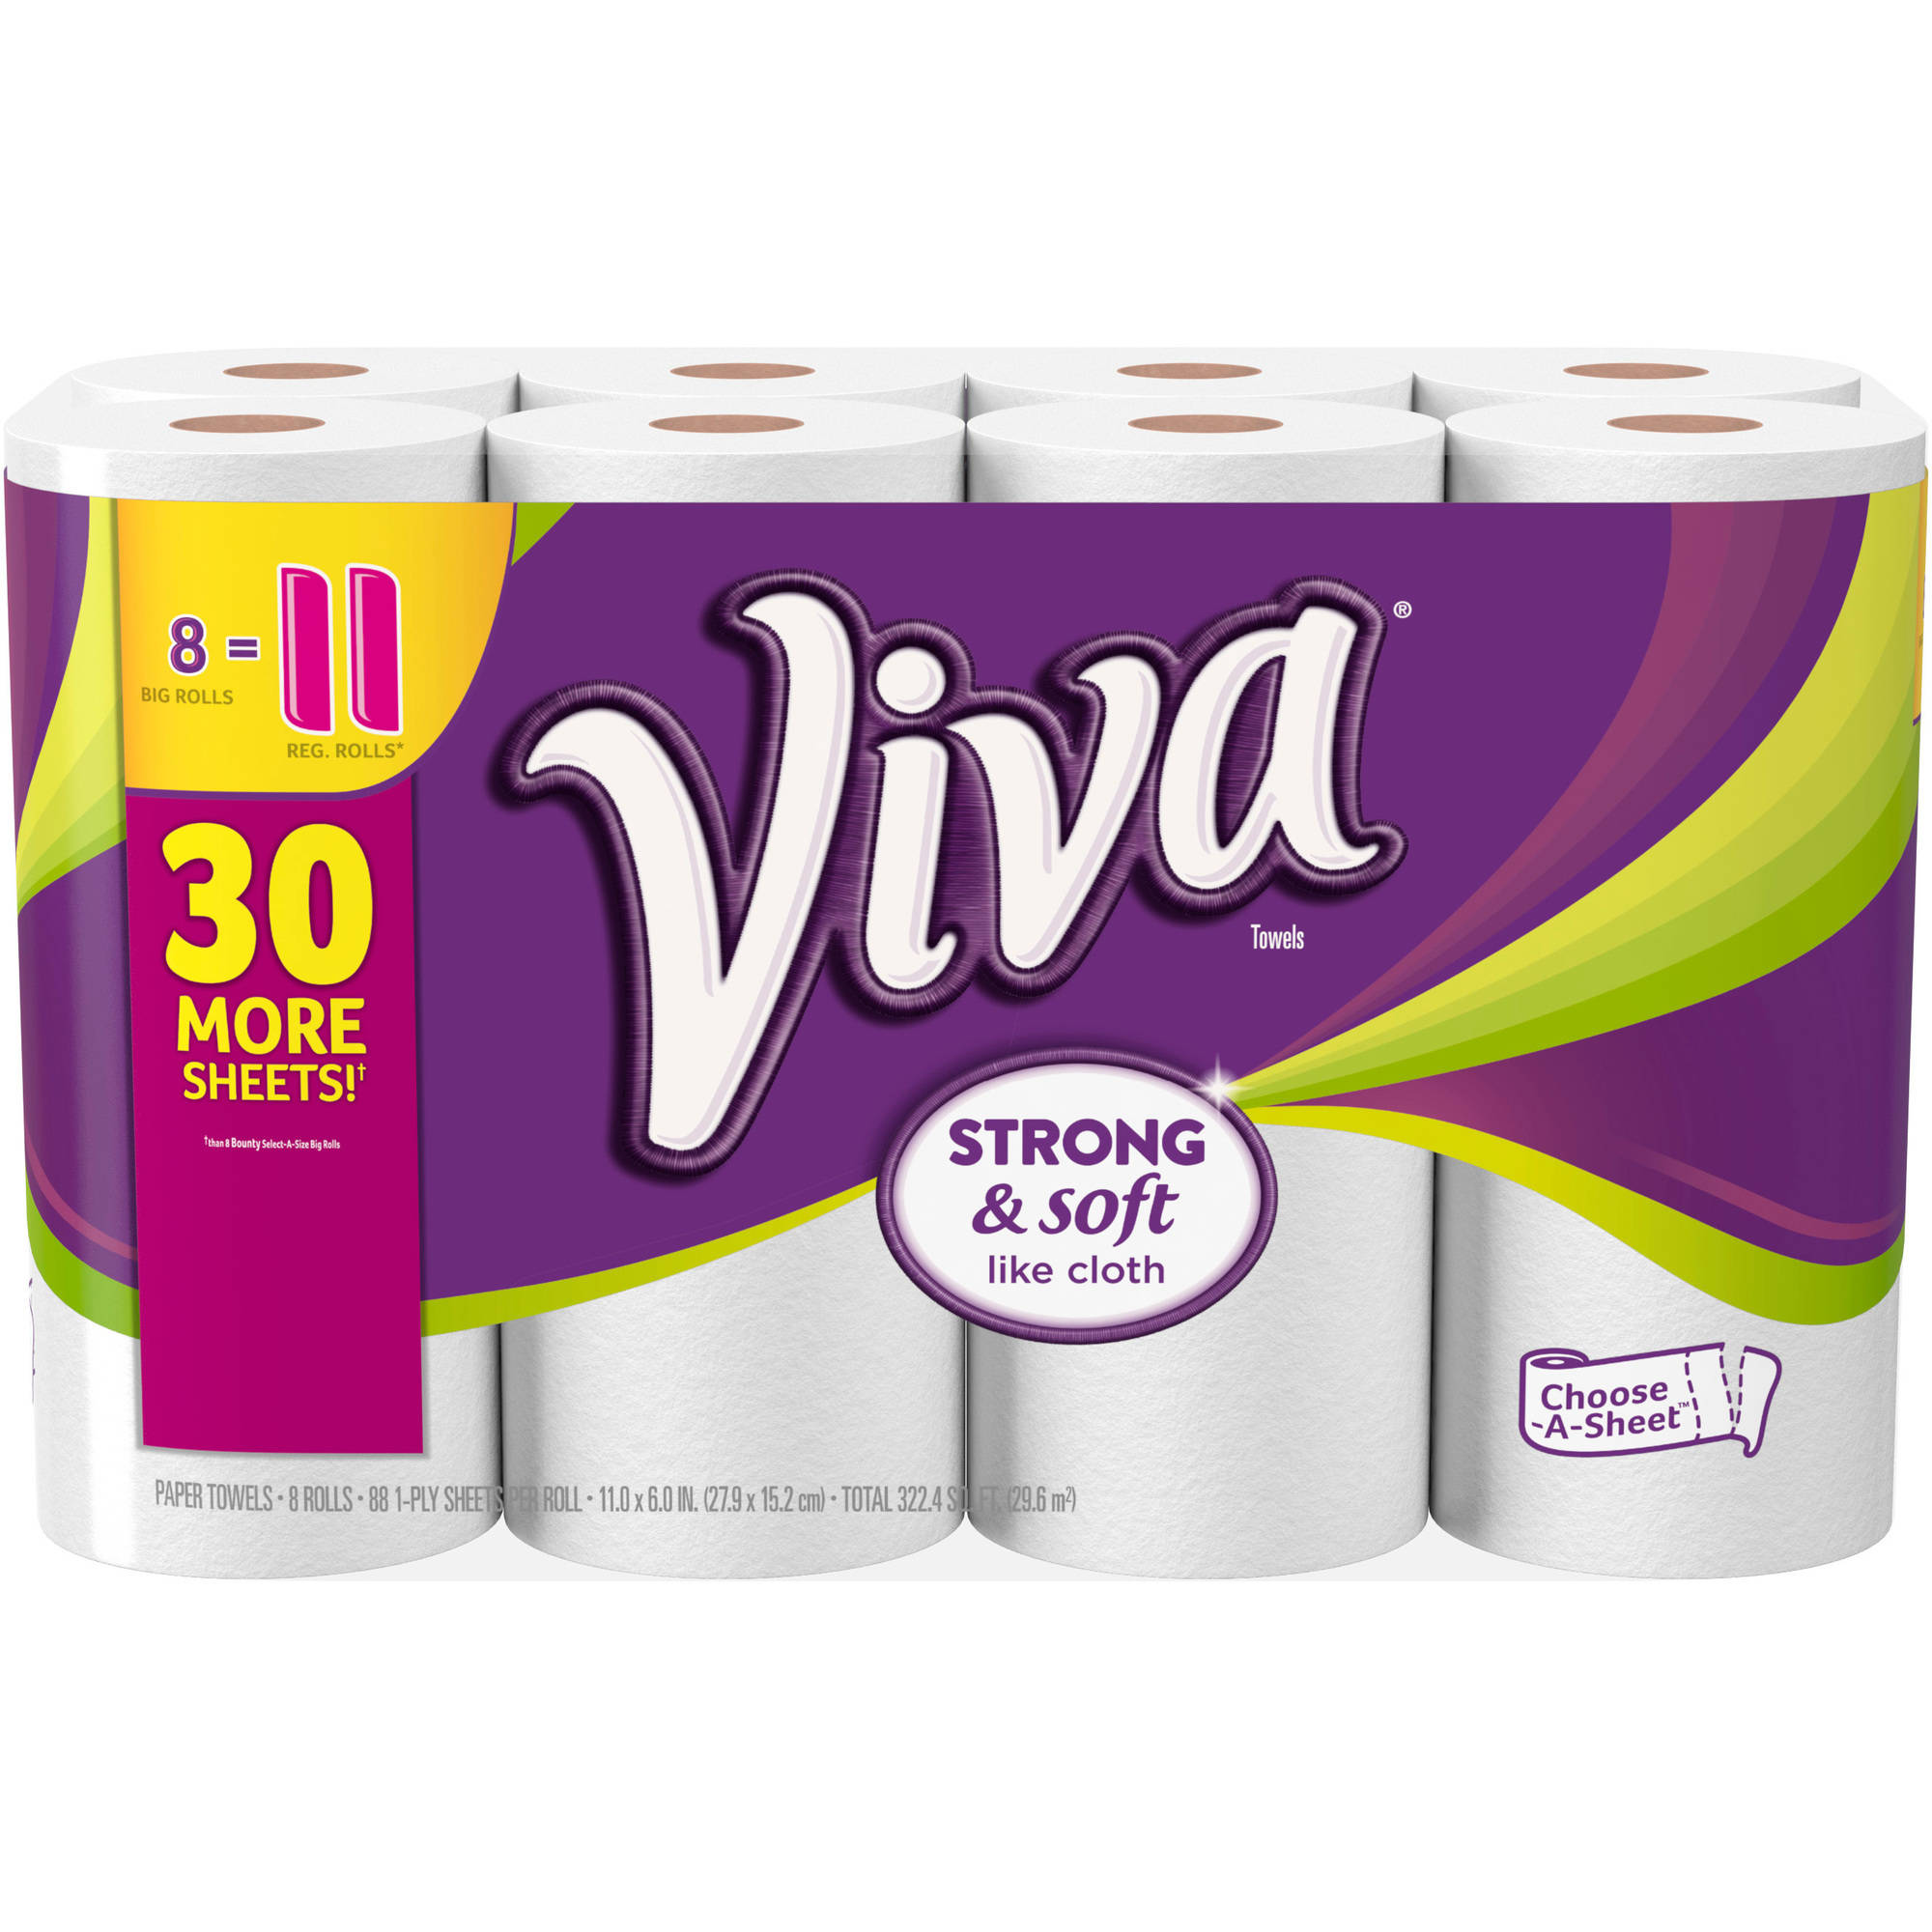 VIVA Choose-a-Sheet Big Roll Paper Towels, White, 88 sheets, 8 rolls